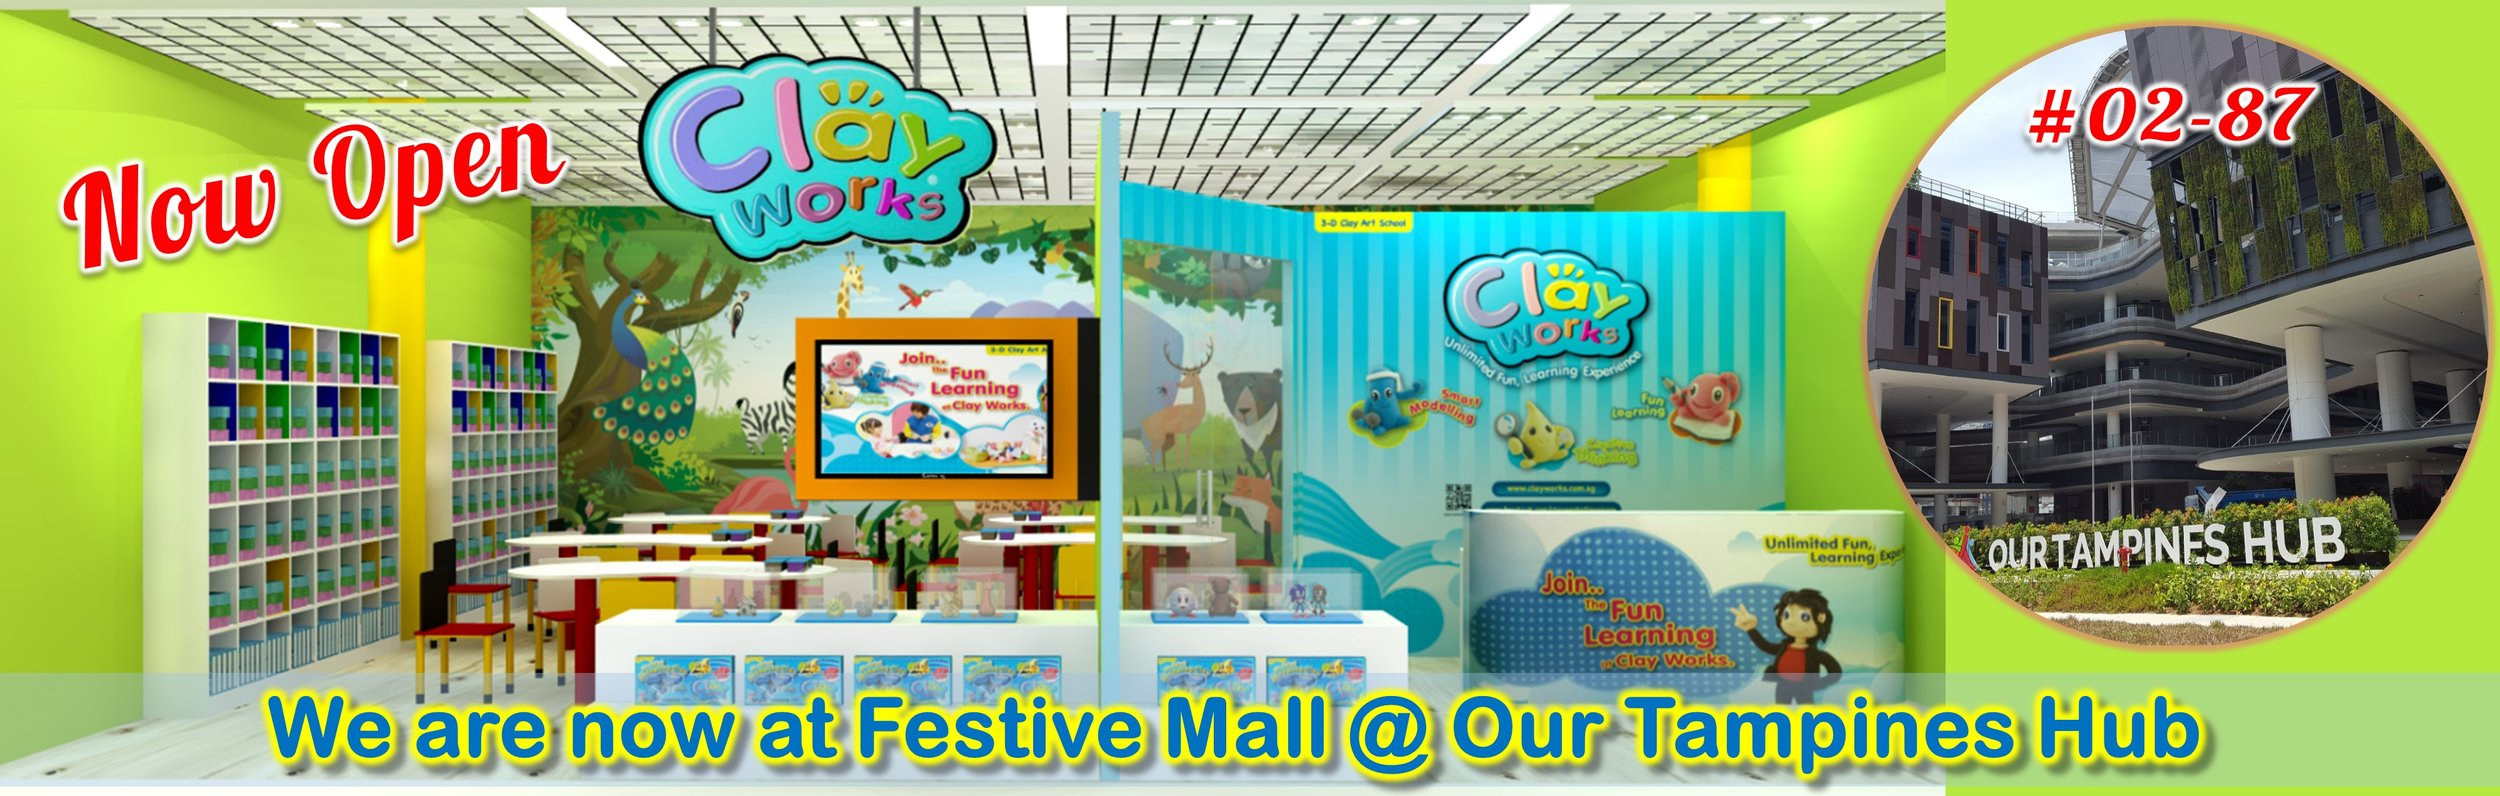 We are now at Festive Mall @ Our Tampines Hub